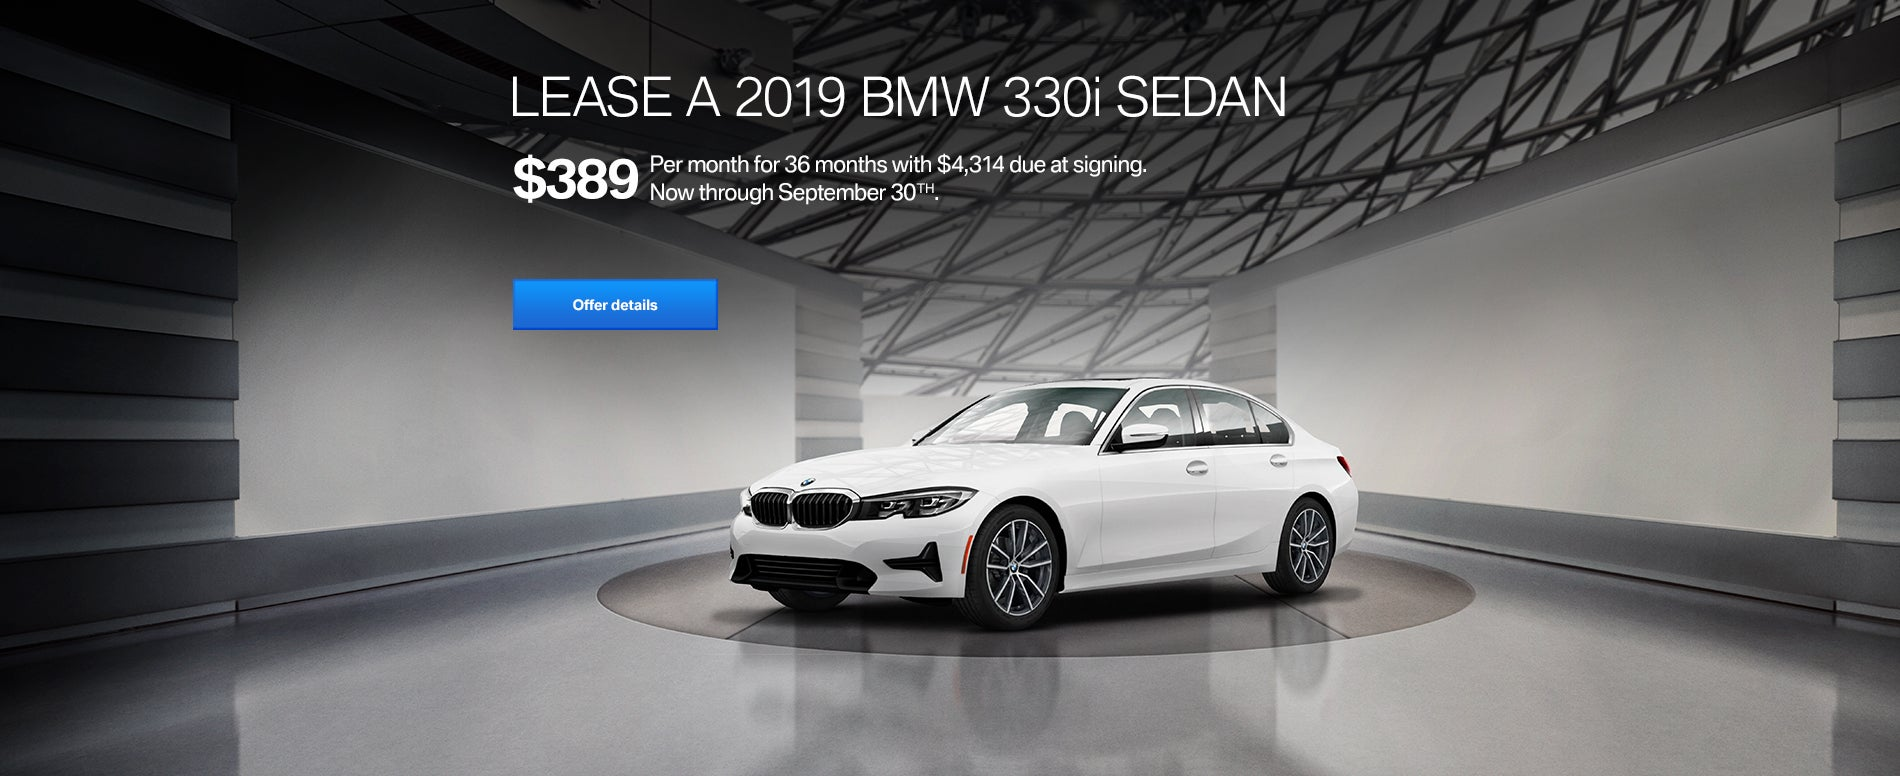 Used Cars Florence Sc >> Bmw Florence Sc Bmw Service Florence Bmw Dealership Near Me